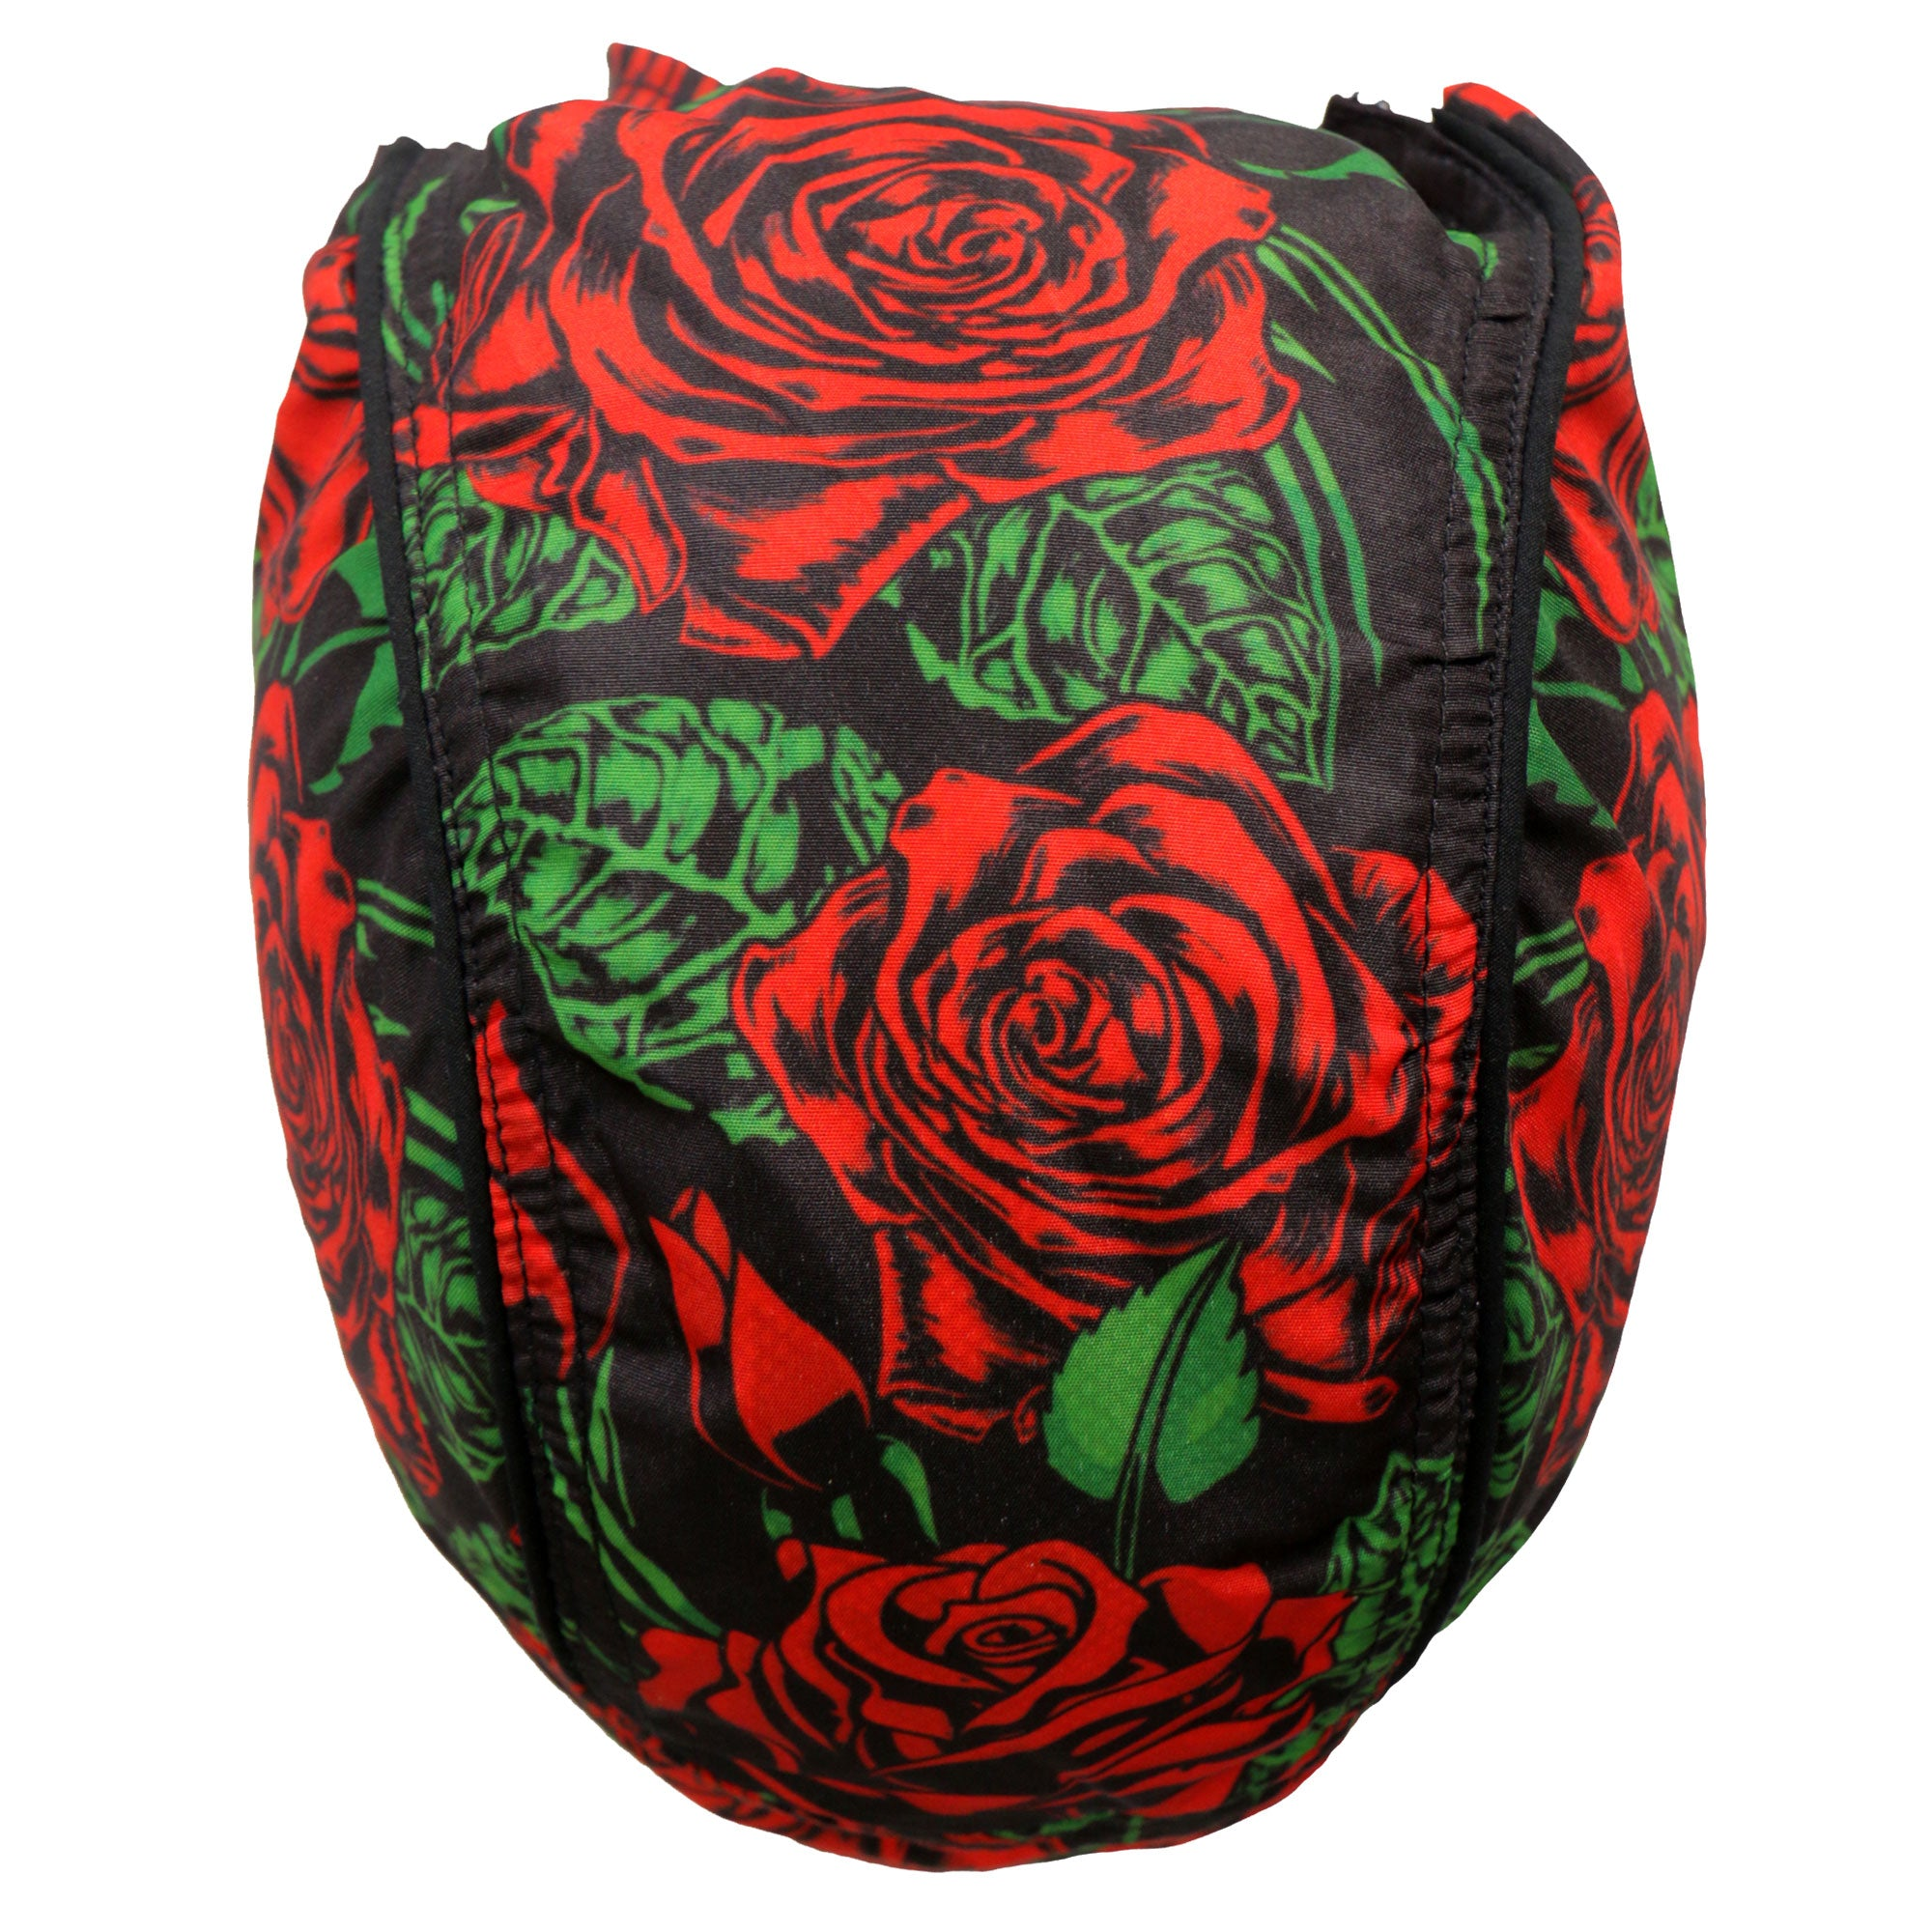 Hot Leathers Headwrap Roses